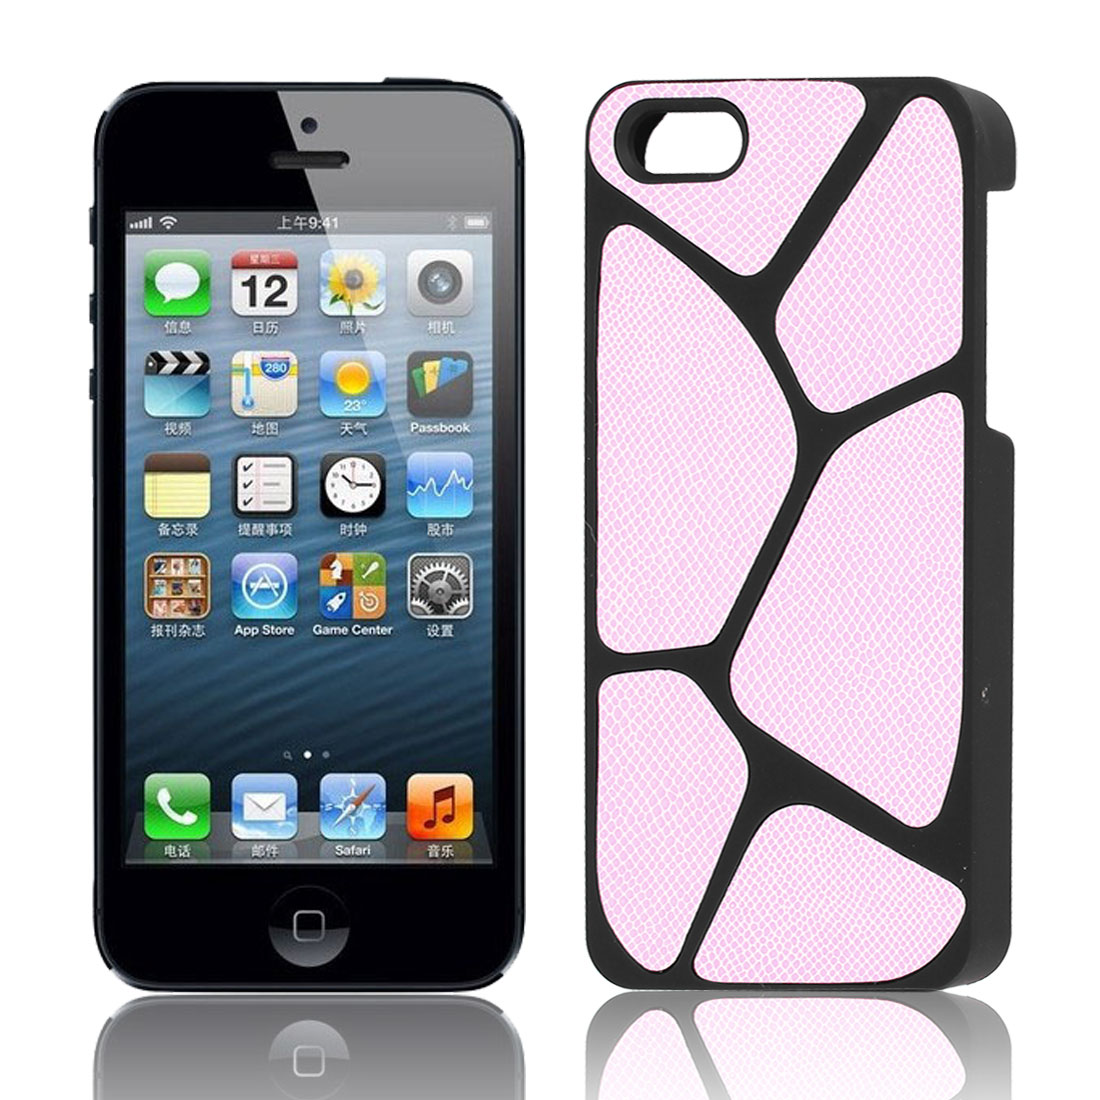 Pink Black Cobblestone Pattern Plastic Back Case Cover Guard for iPhone 5 5G 5th